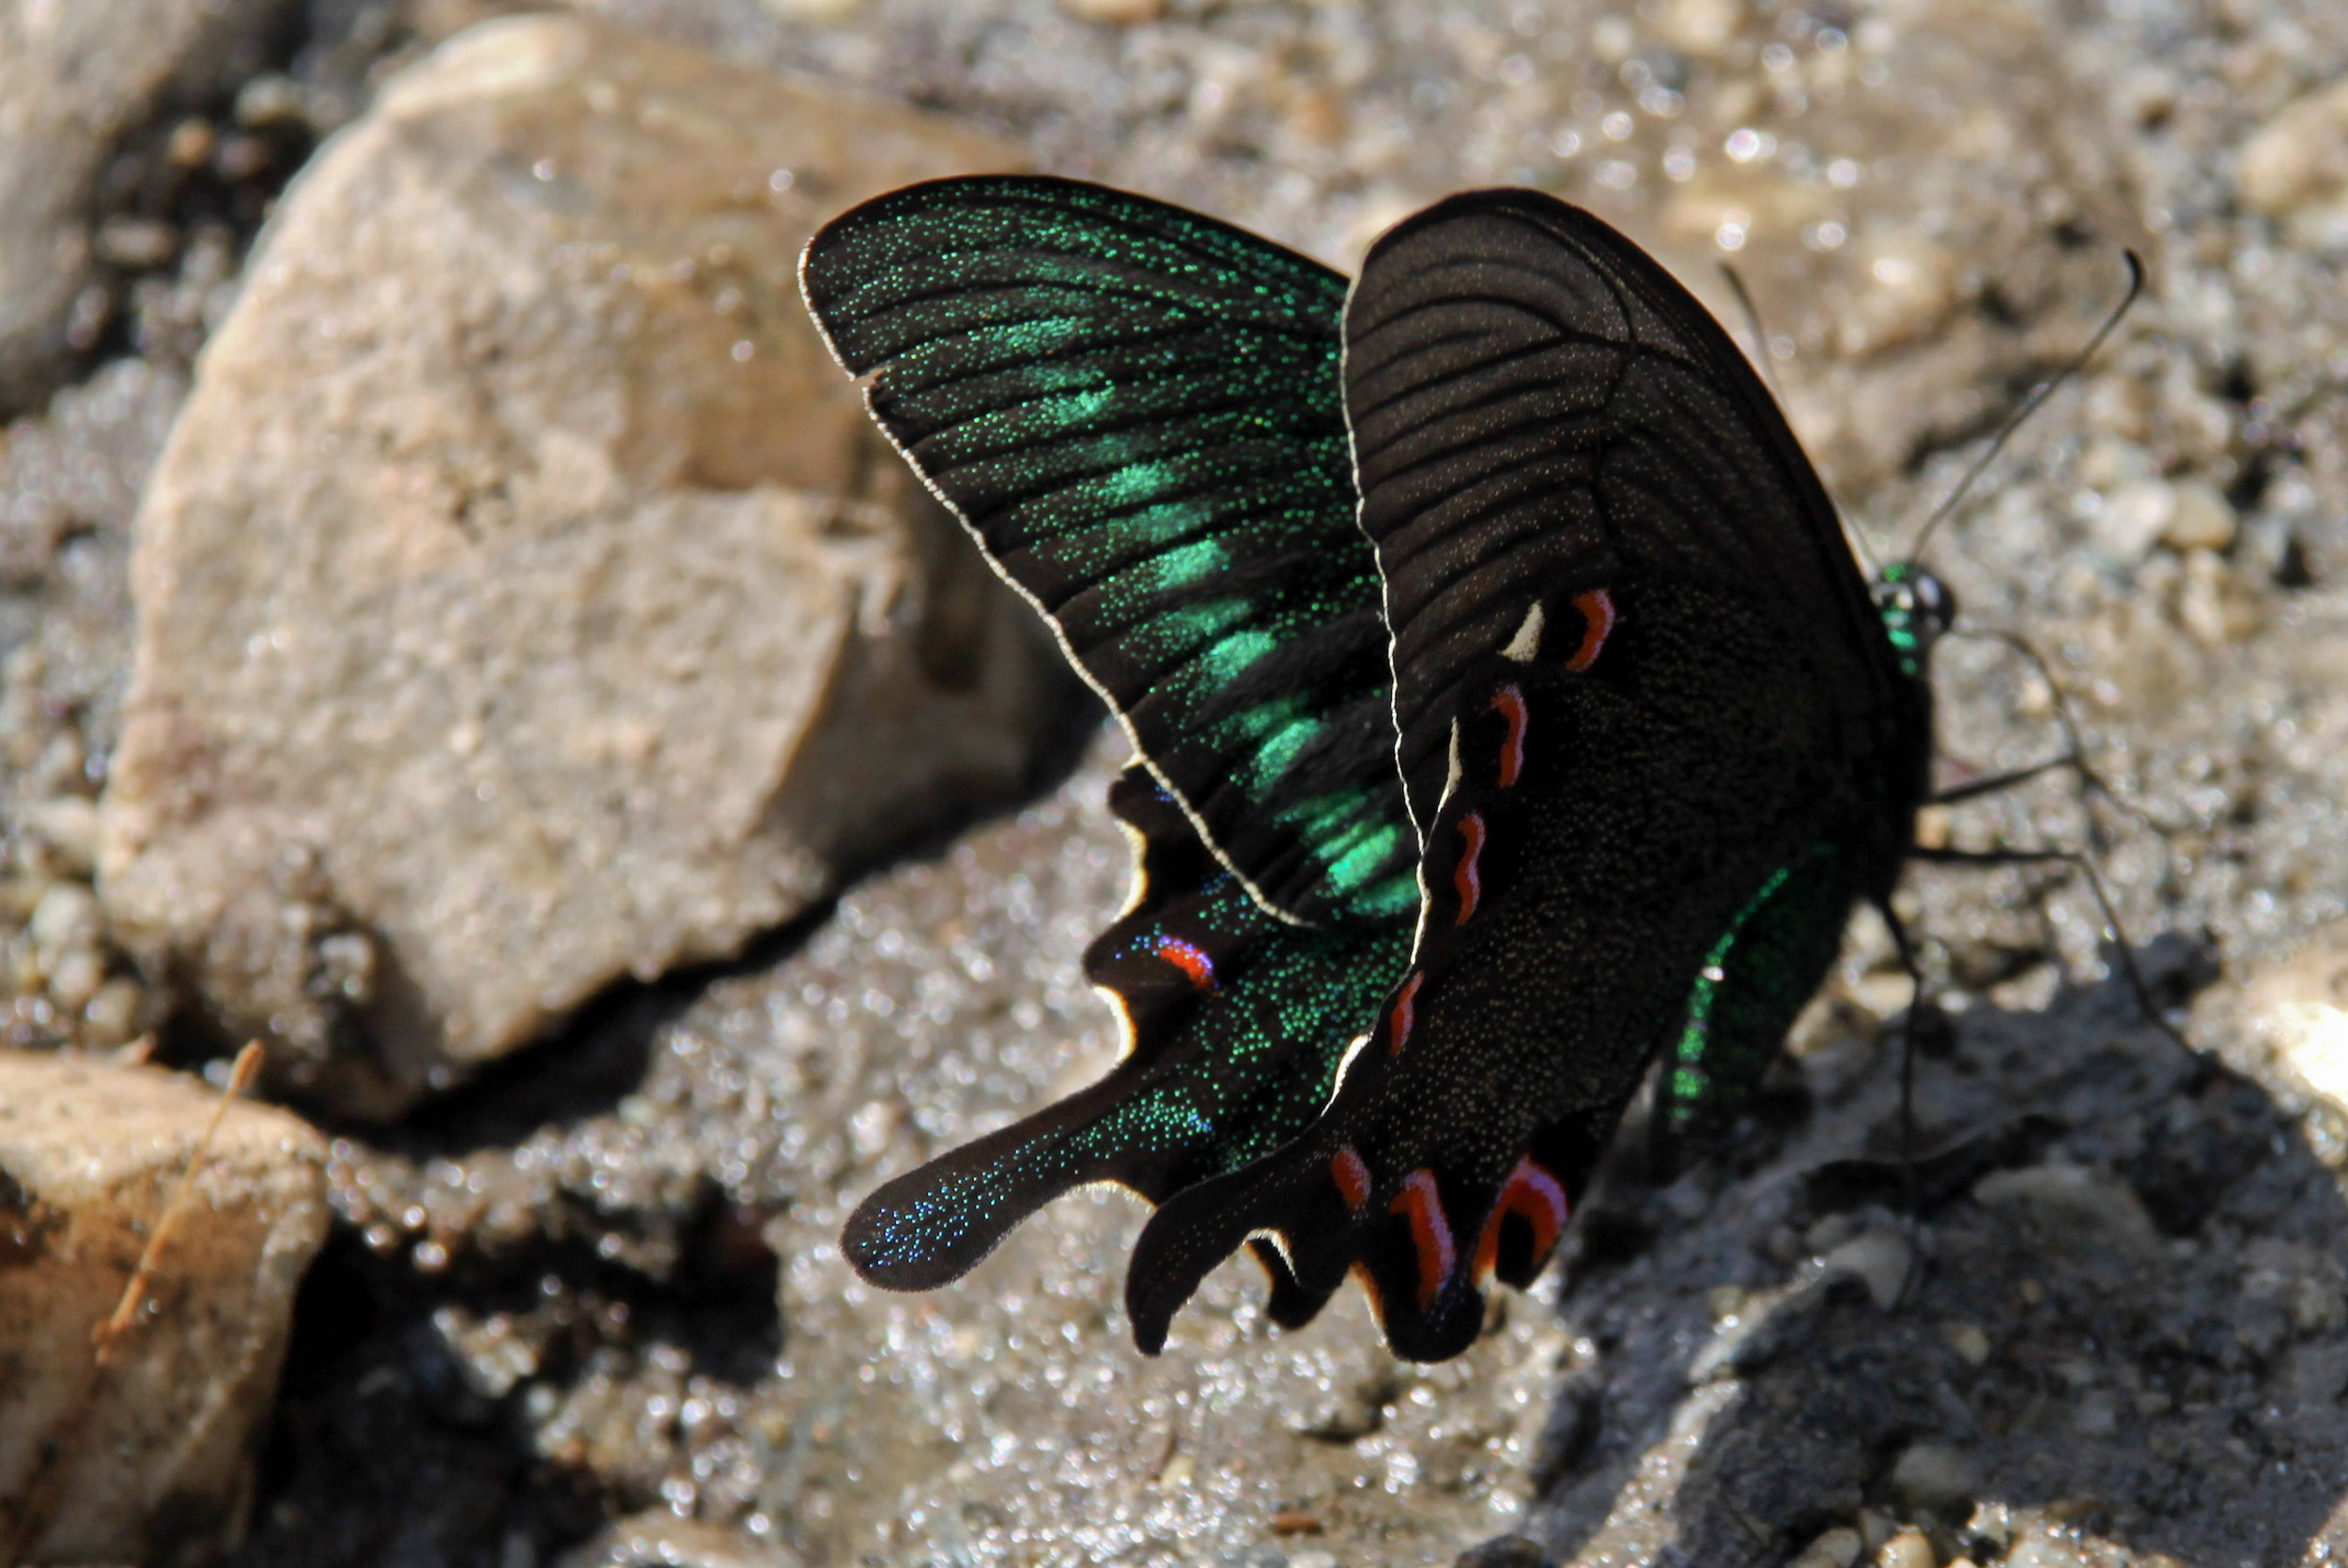 West Himalayan common peacock ( Papilio bianor polyctor ). This is the official butterfly of the Indian state of Uttarakhand, which means that this insect is part of the identity of more than 10 million people. Photo: Amos Zerah